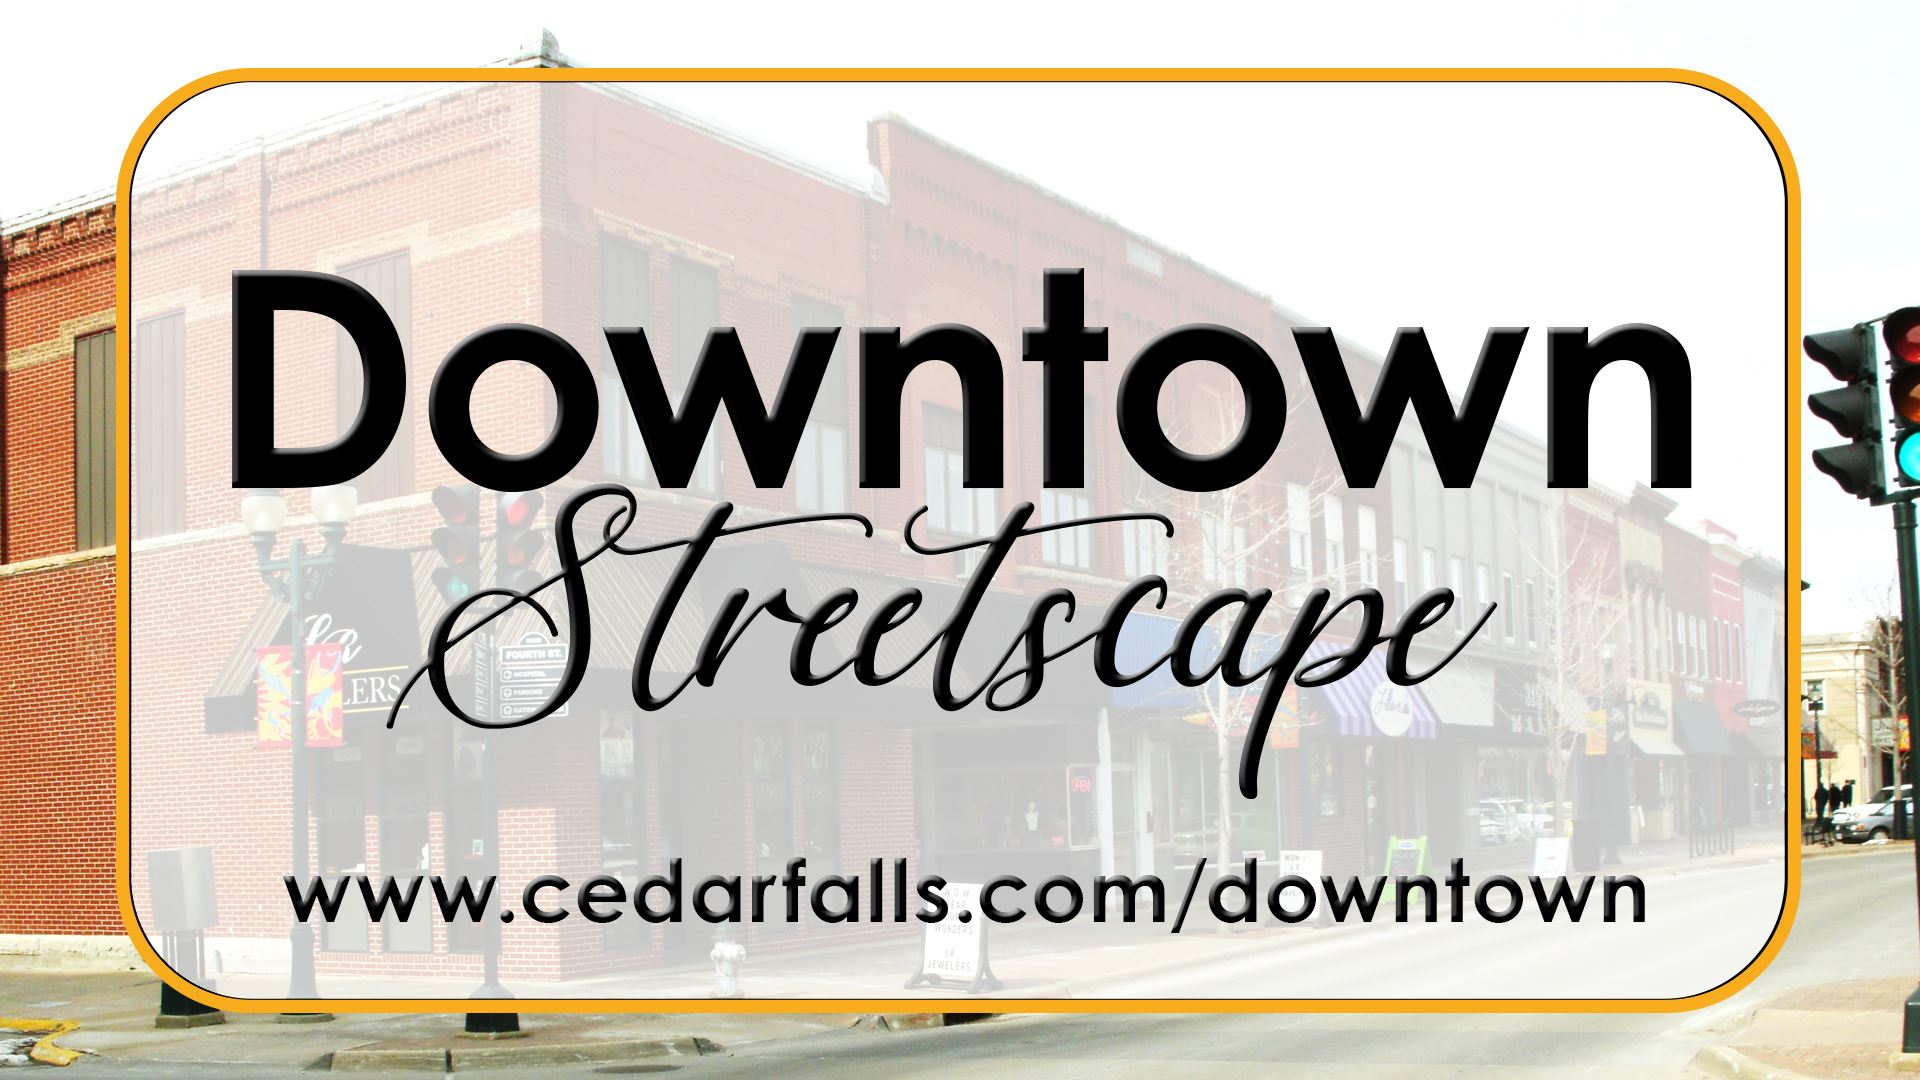 Downtown Streetscape Social 1